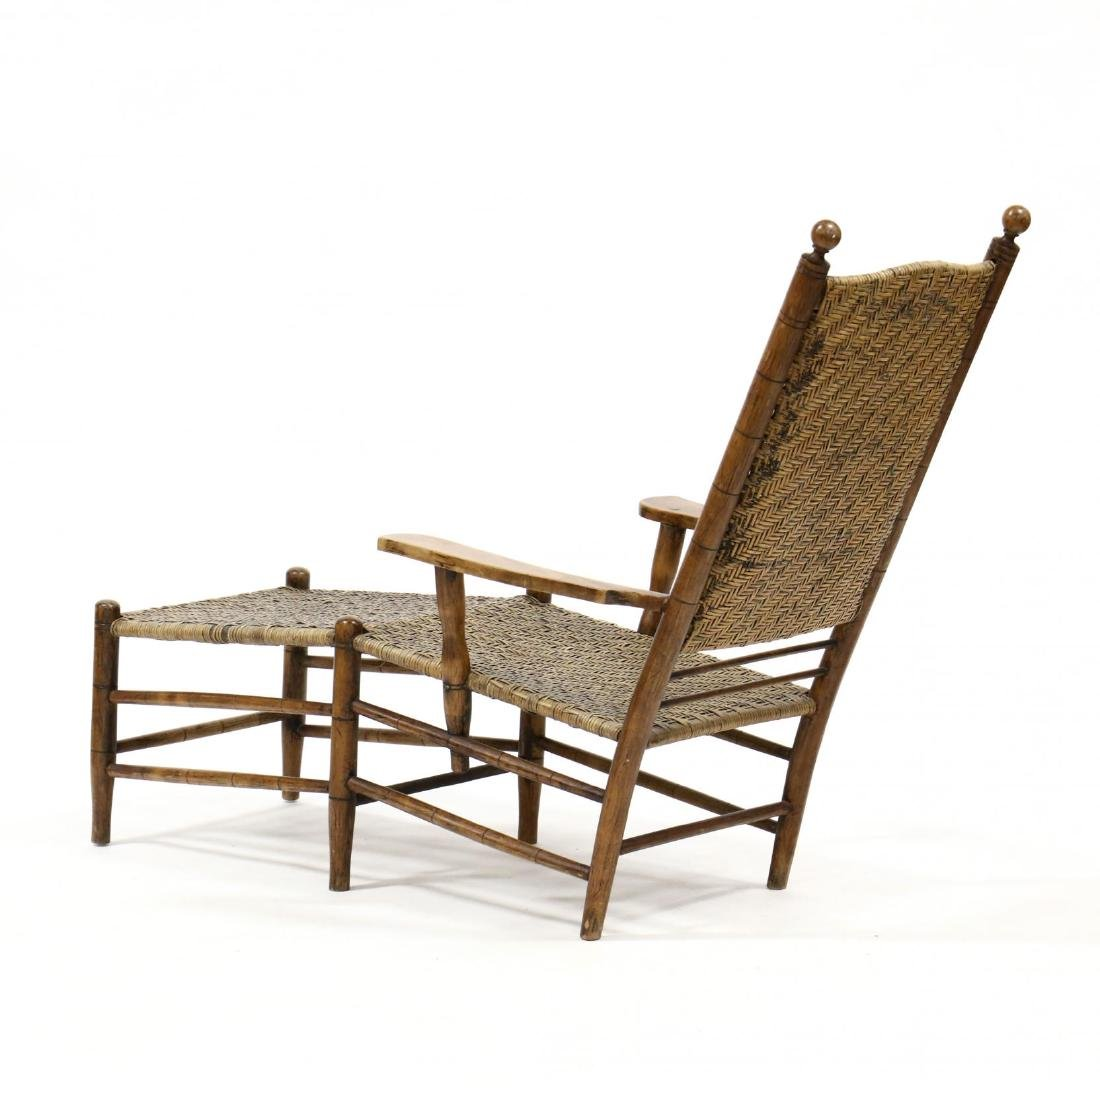 American Plantation Lounge Chair - 3